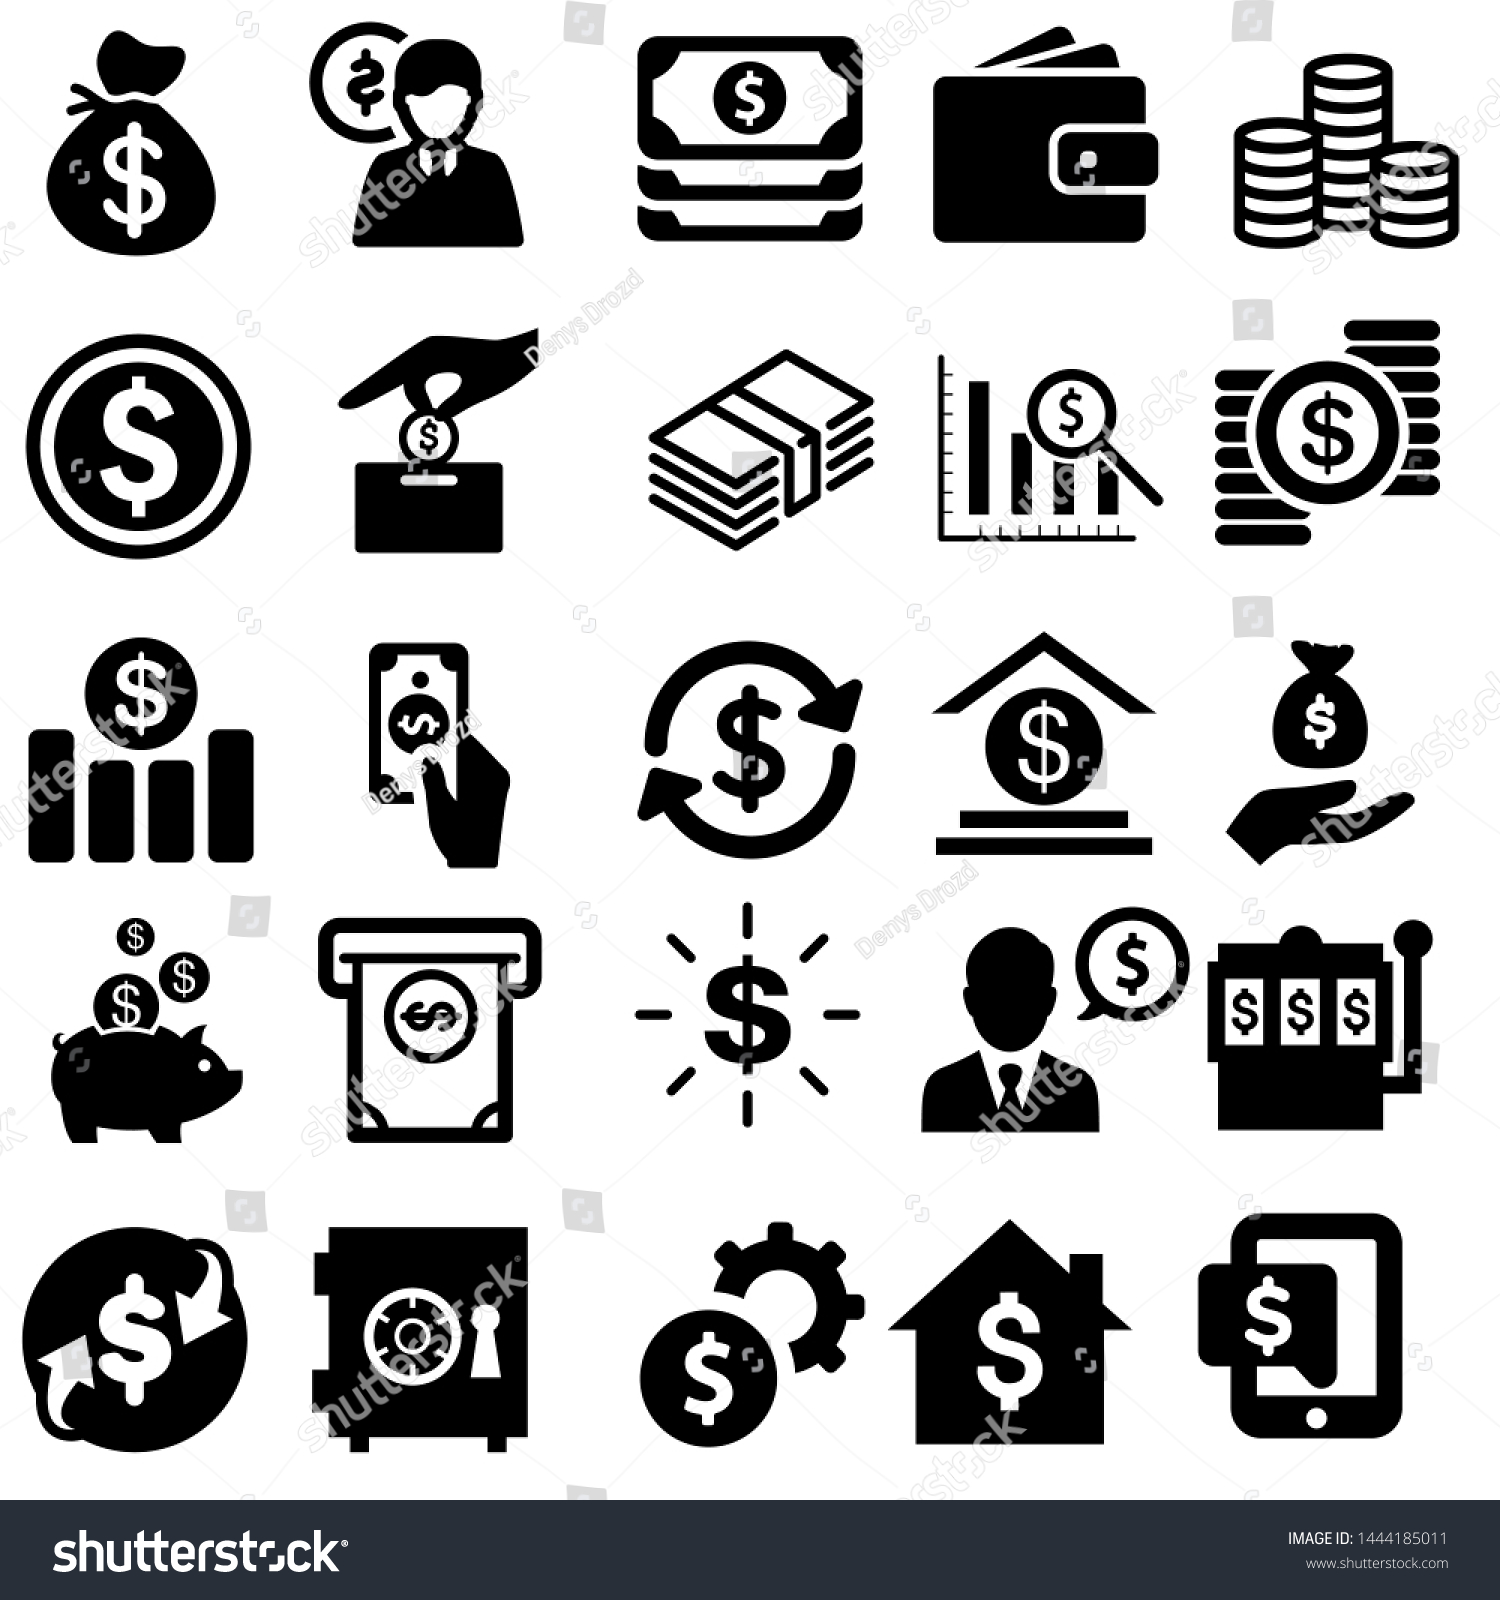 Money vector icons set. Bank card illustration. Dollar collection.